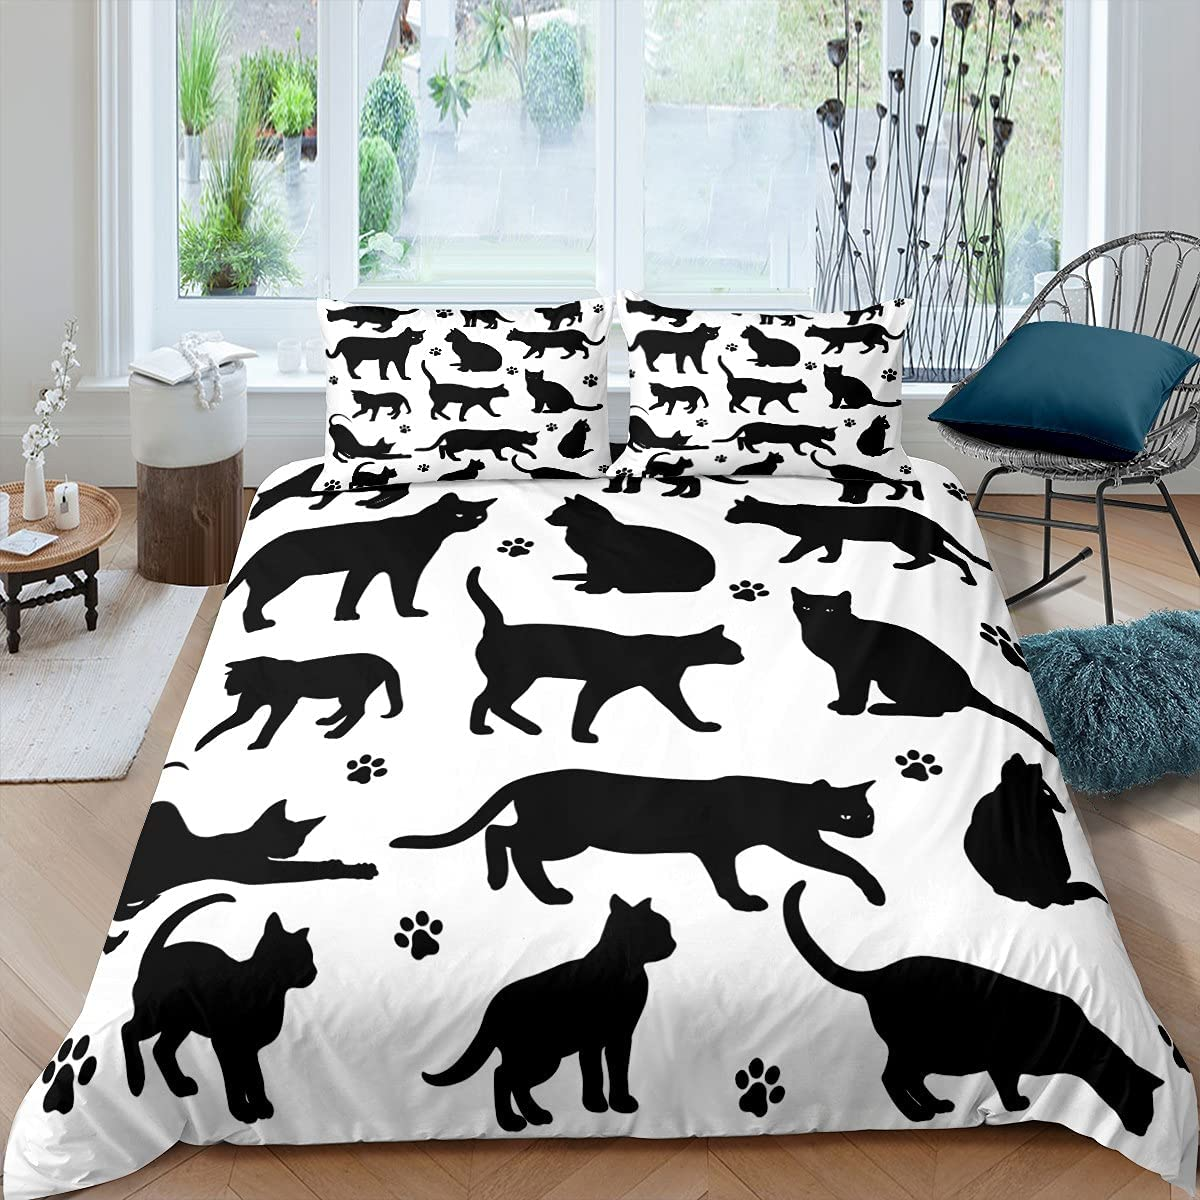 Black Cat Duvet We OFFer at cheap prices Cover Set Pet Cartoon Pattern shipfree B Silhouettes